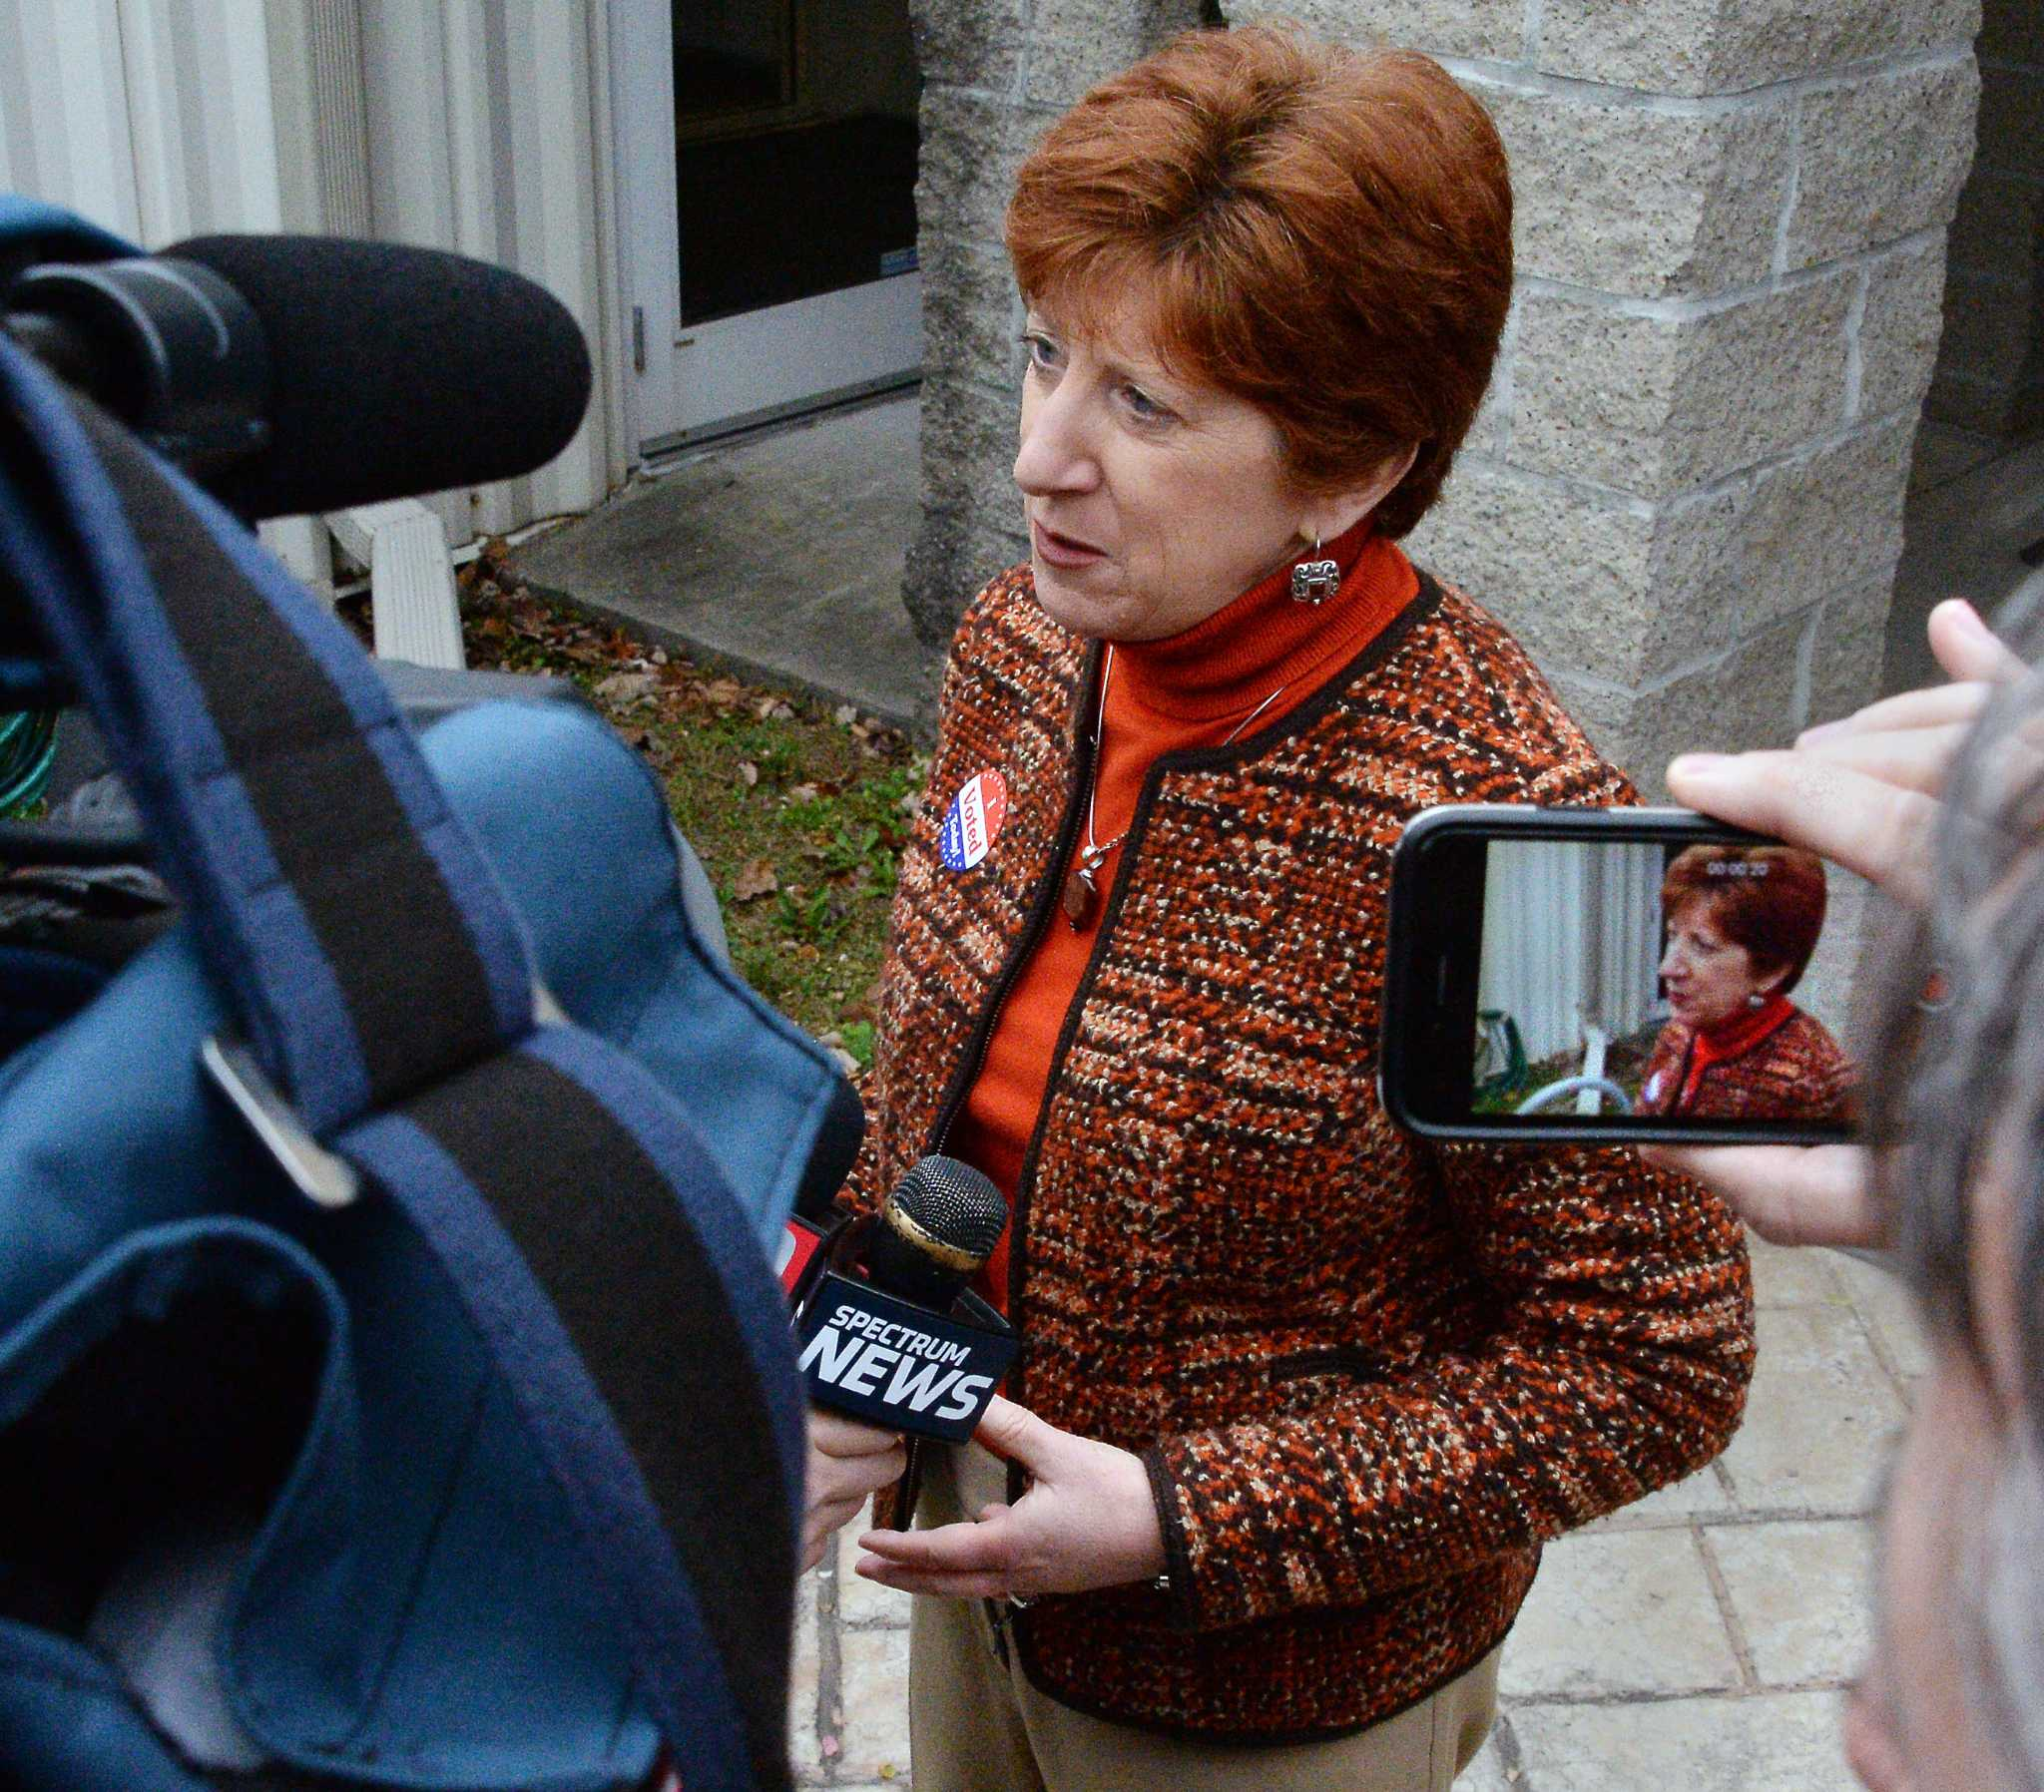 Sheridan Schools Closed Thursday As Manhunt For Suspects: Albany County Election Results